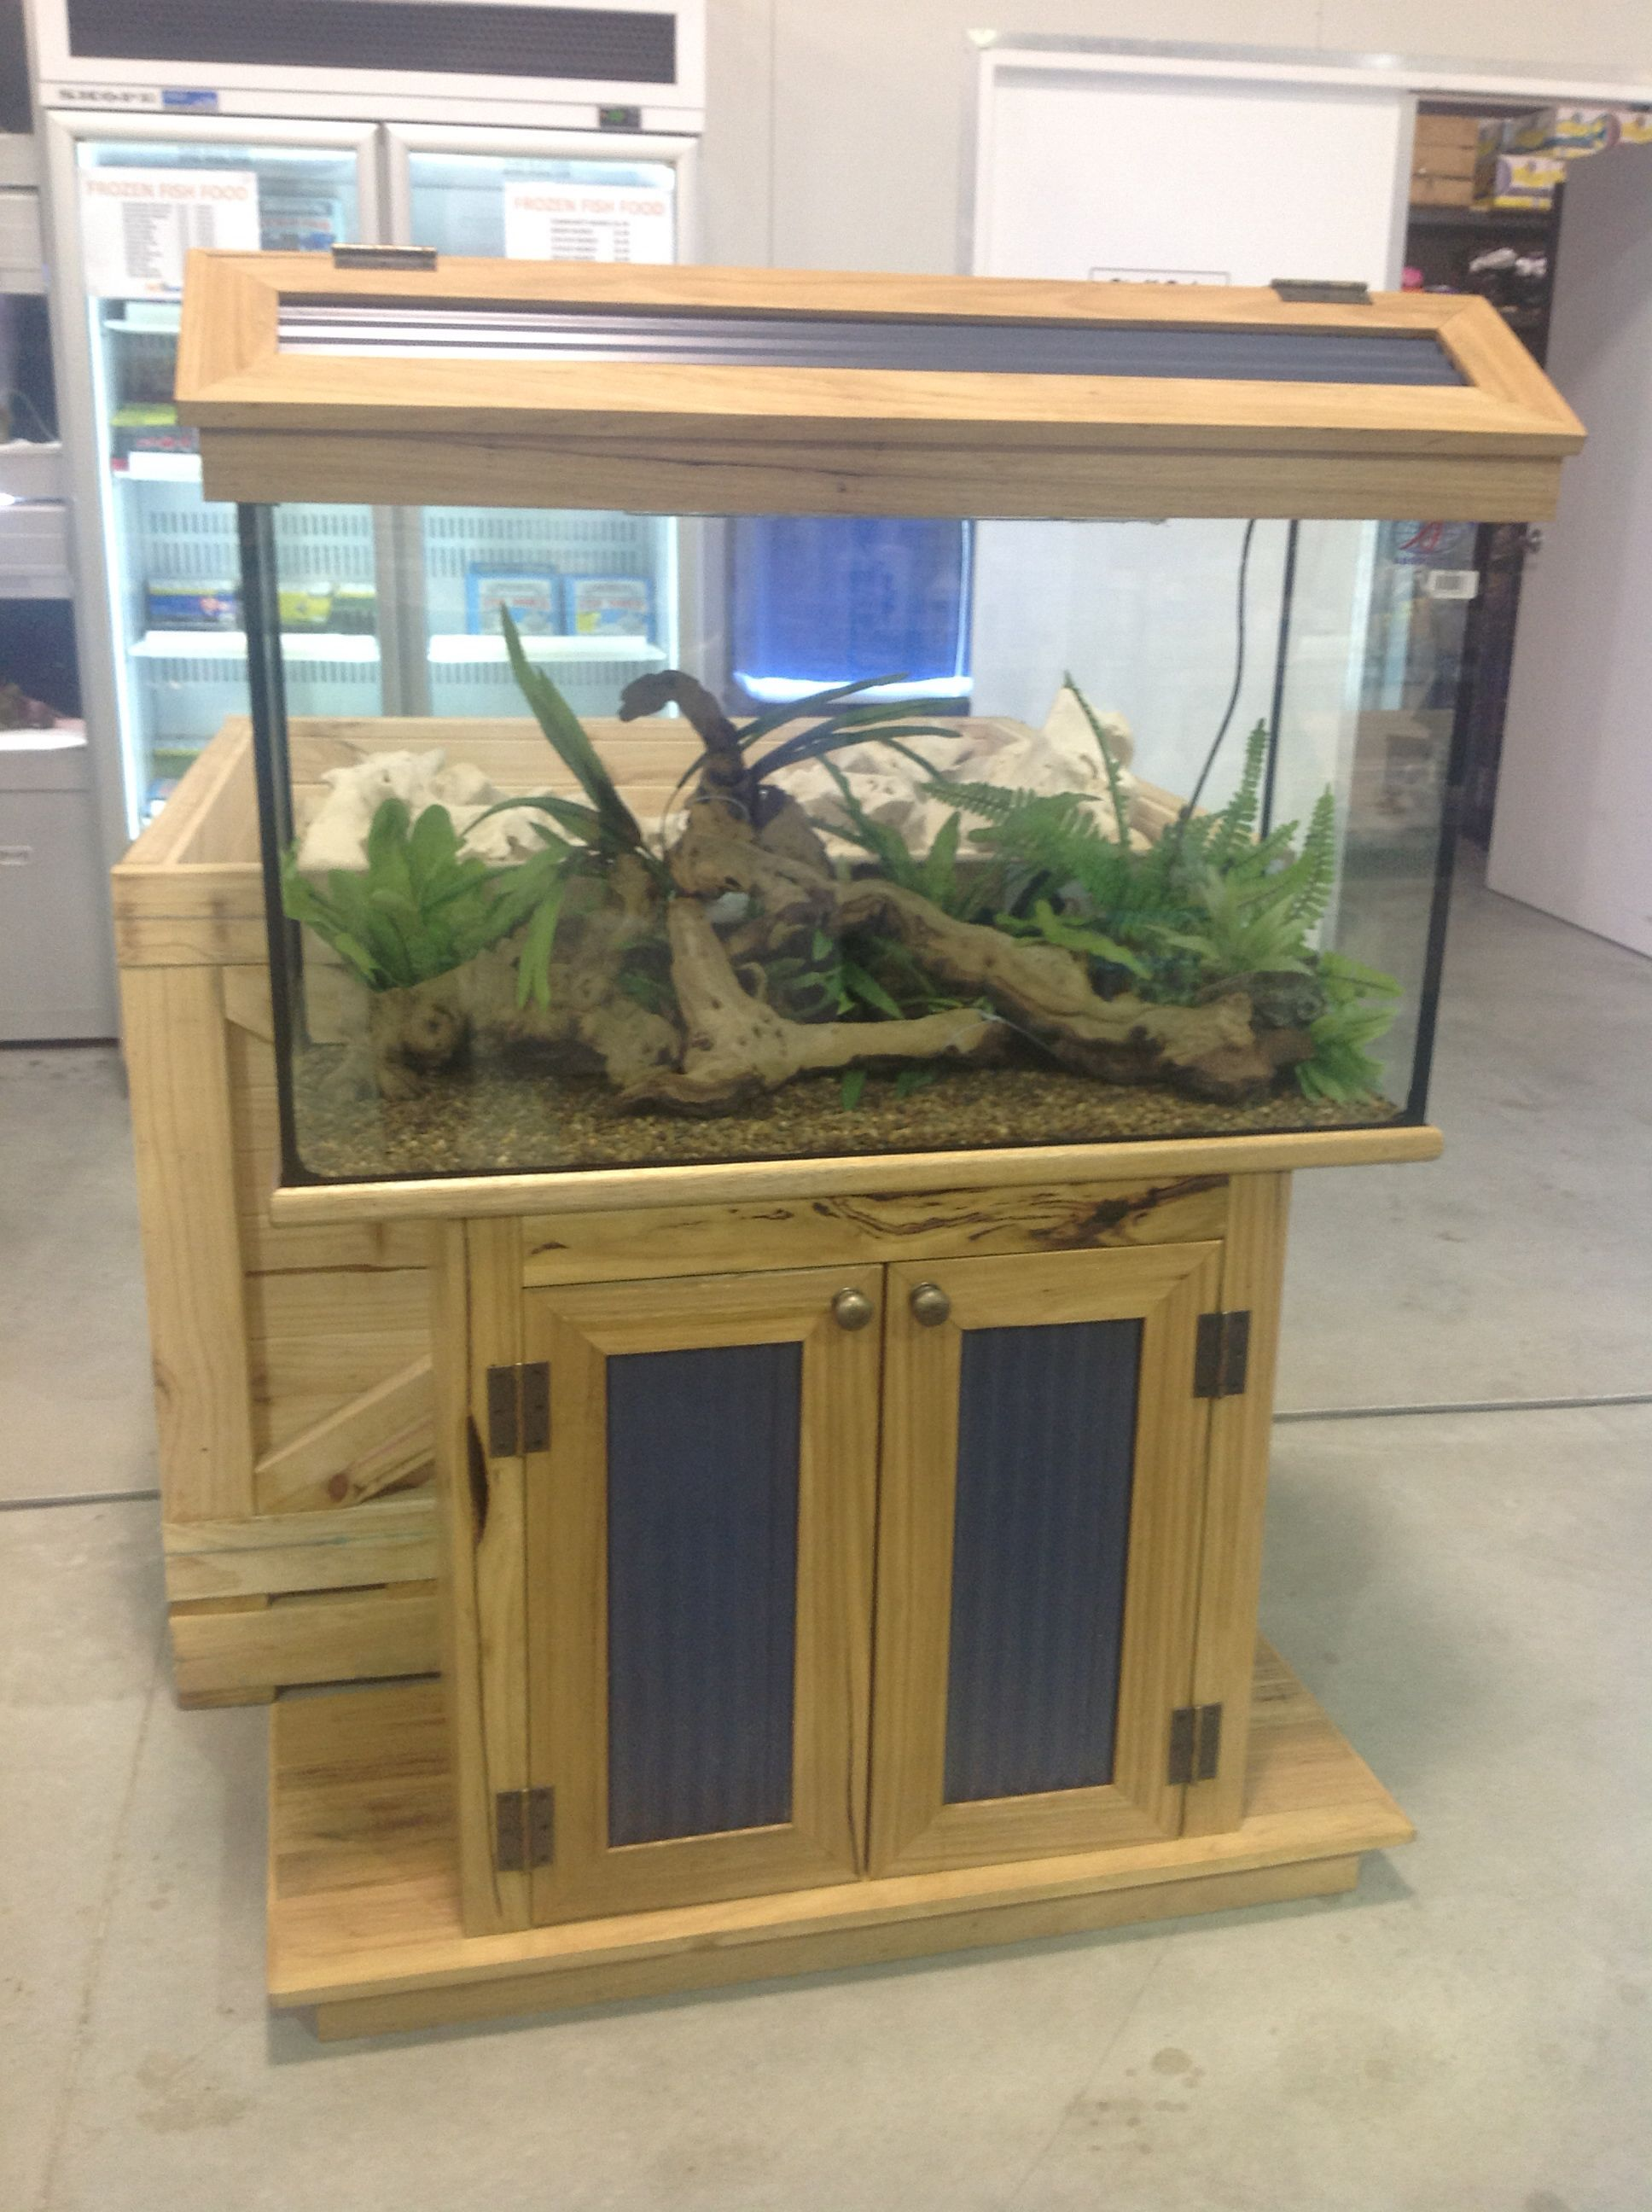 Solid Wood Custom Made Recycled Hardwood Fish Tank Stand By Rhind House Of Timber